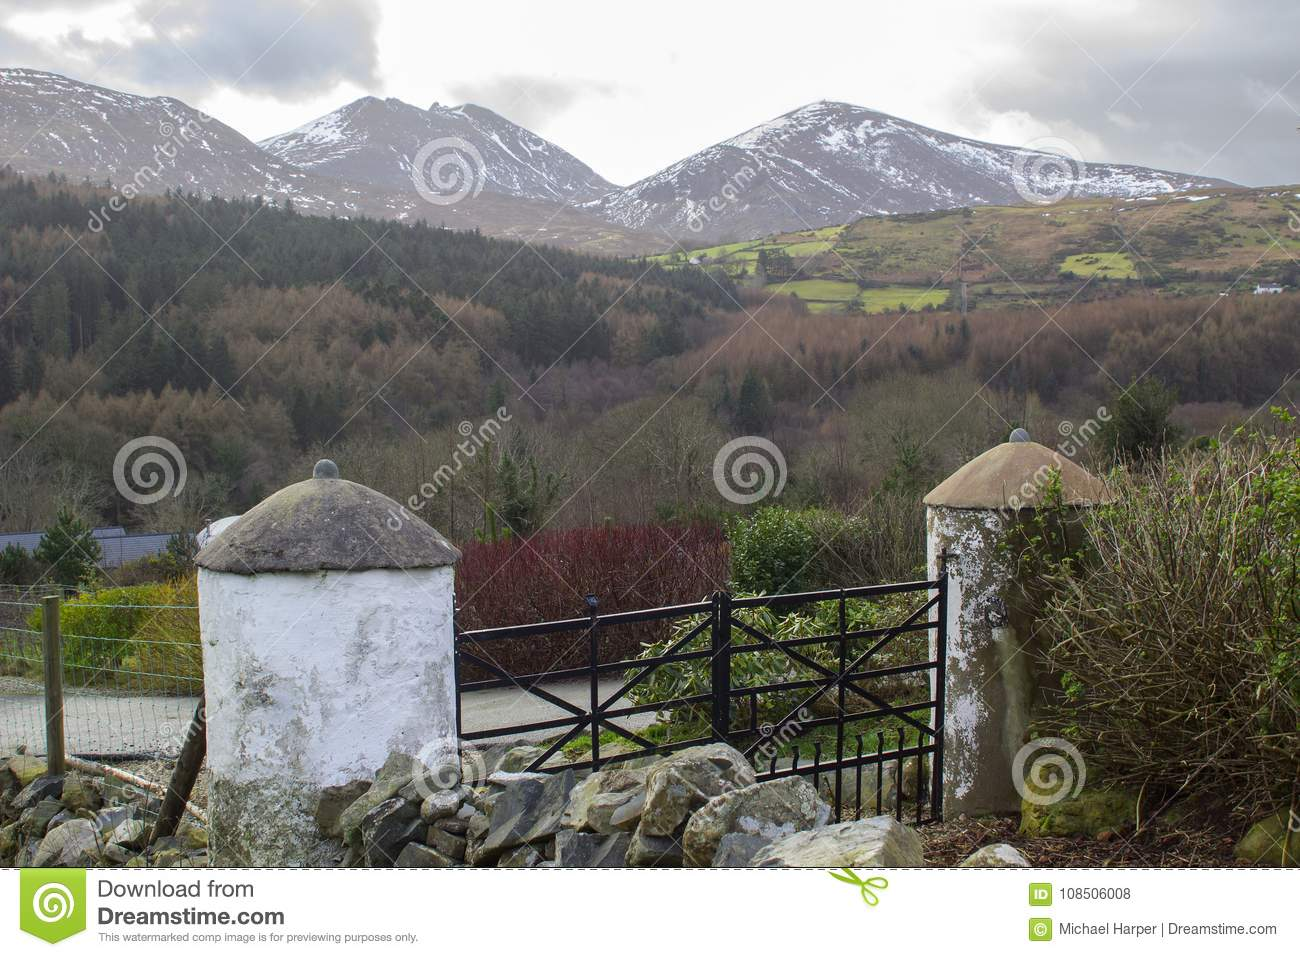 A view across one of the many snow topped hills and valleys of the Mourne Mountains in County down in Northern Ireland on a dull m